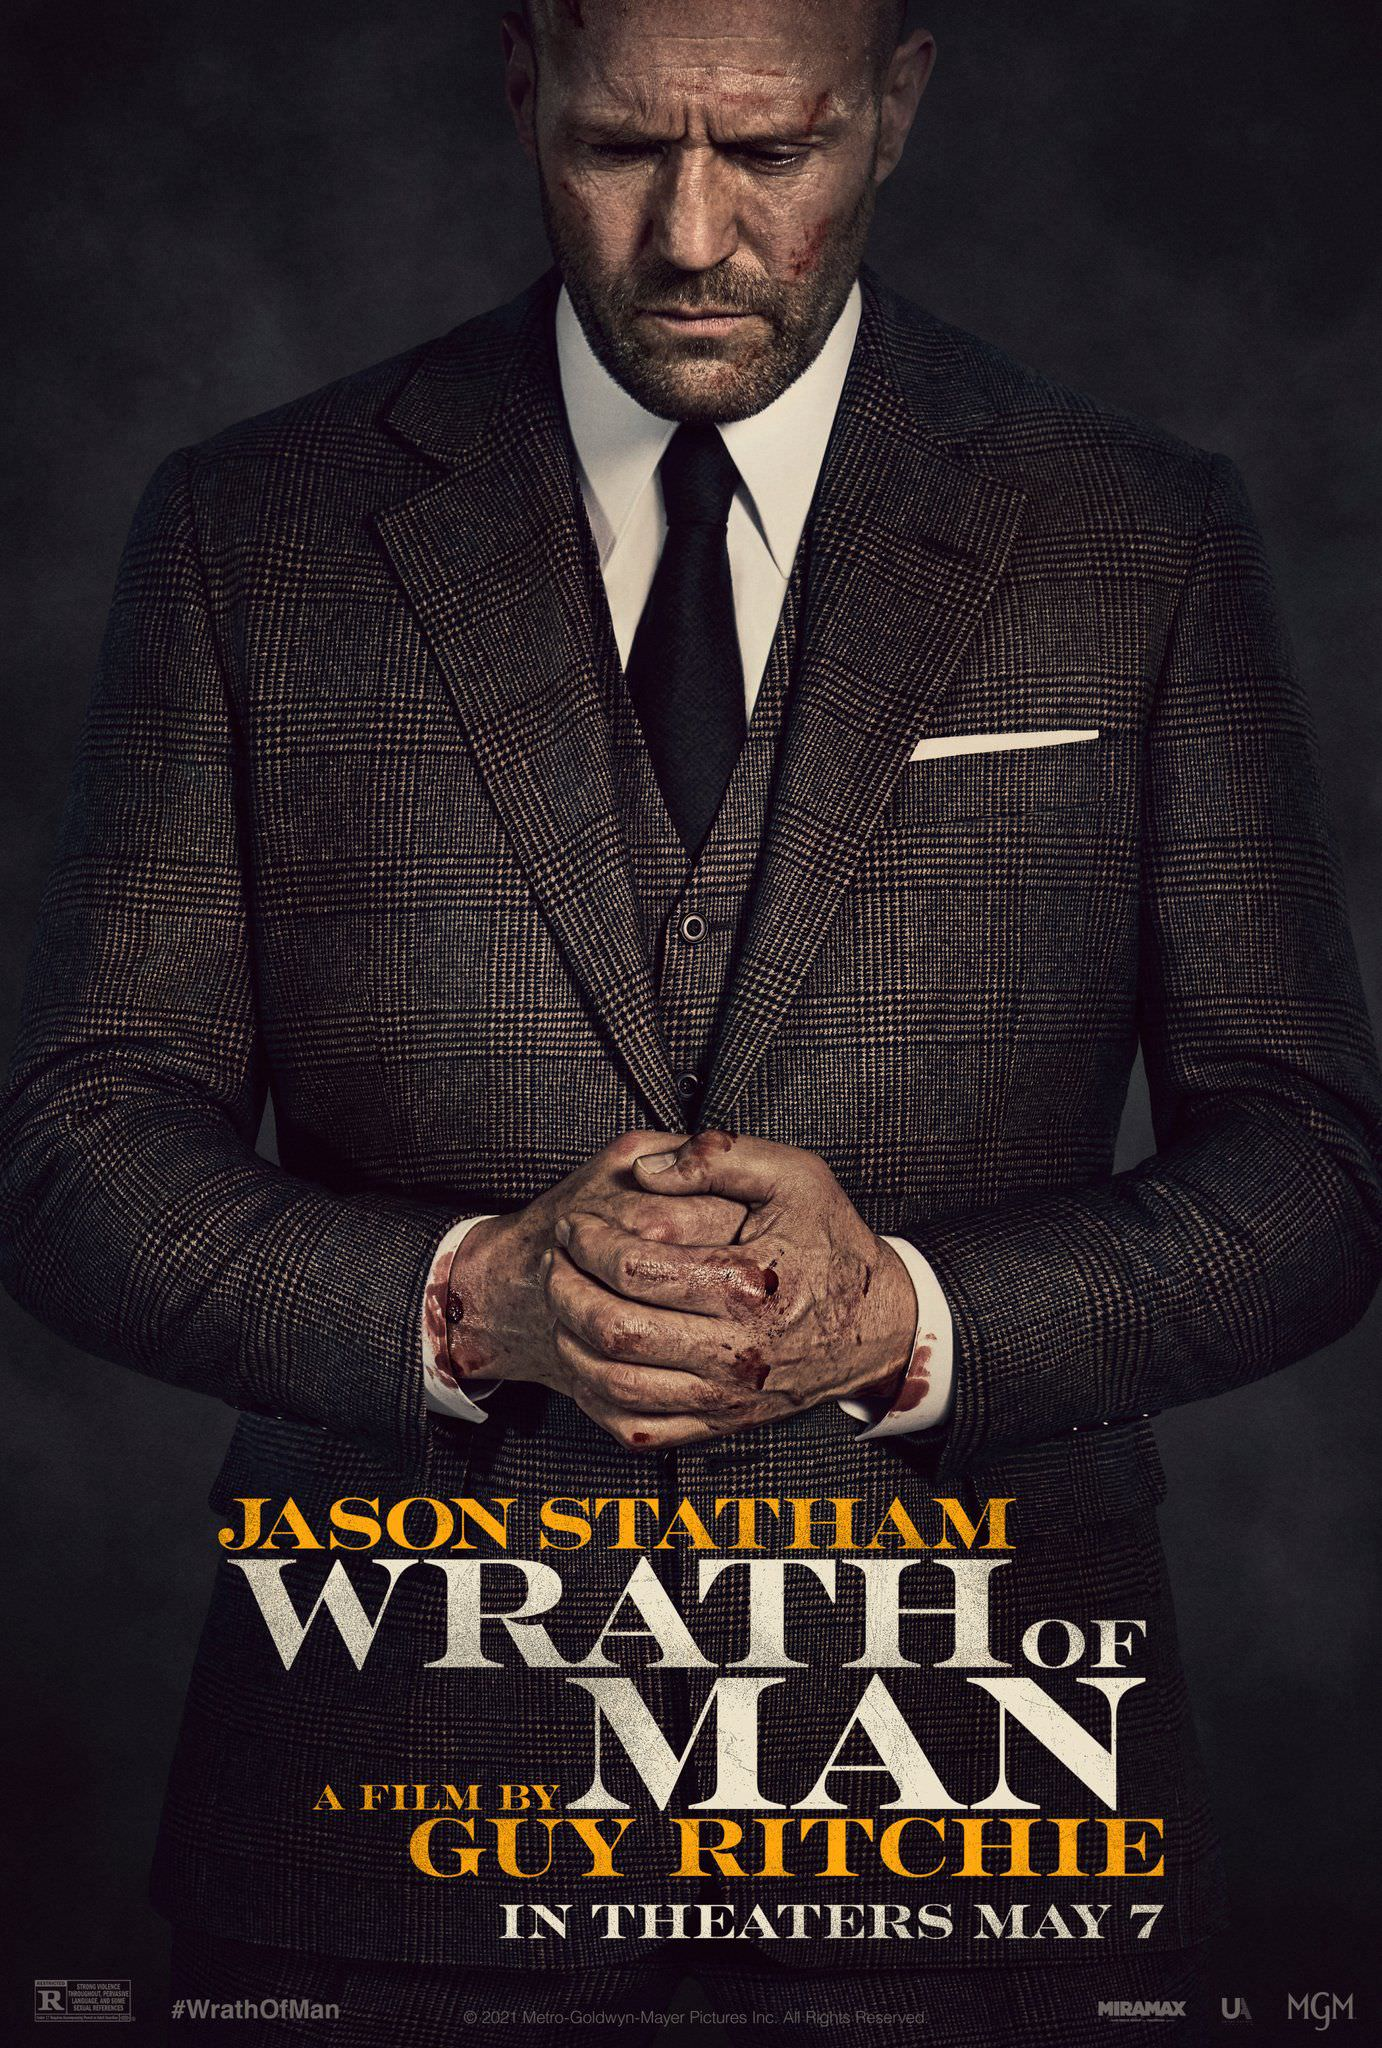 Jason Statham in the first poster of the movie Wrath of Man directed by Guy Ritchie